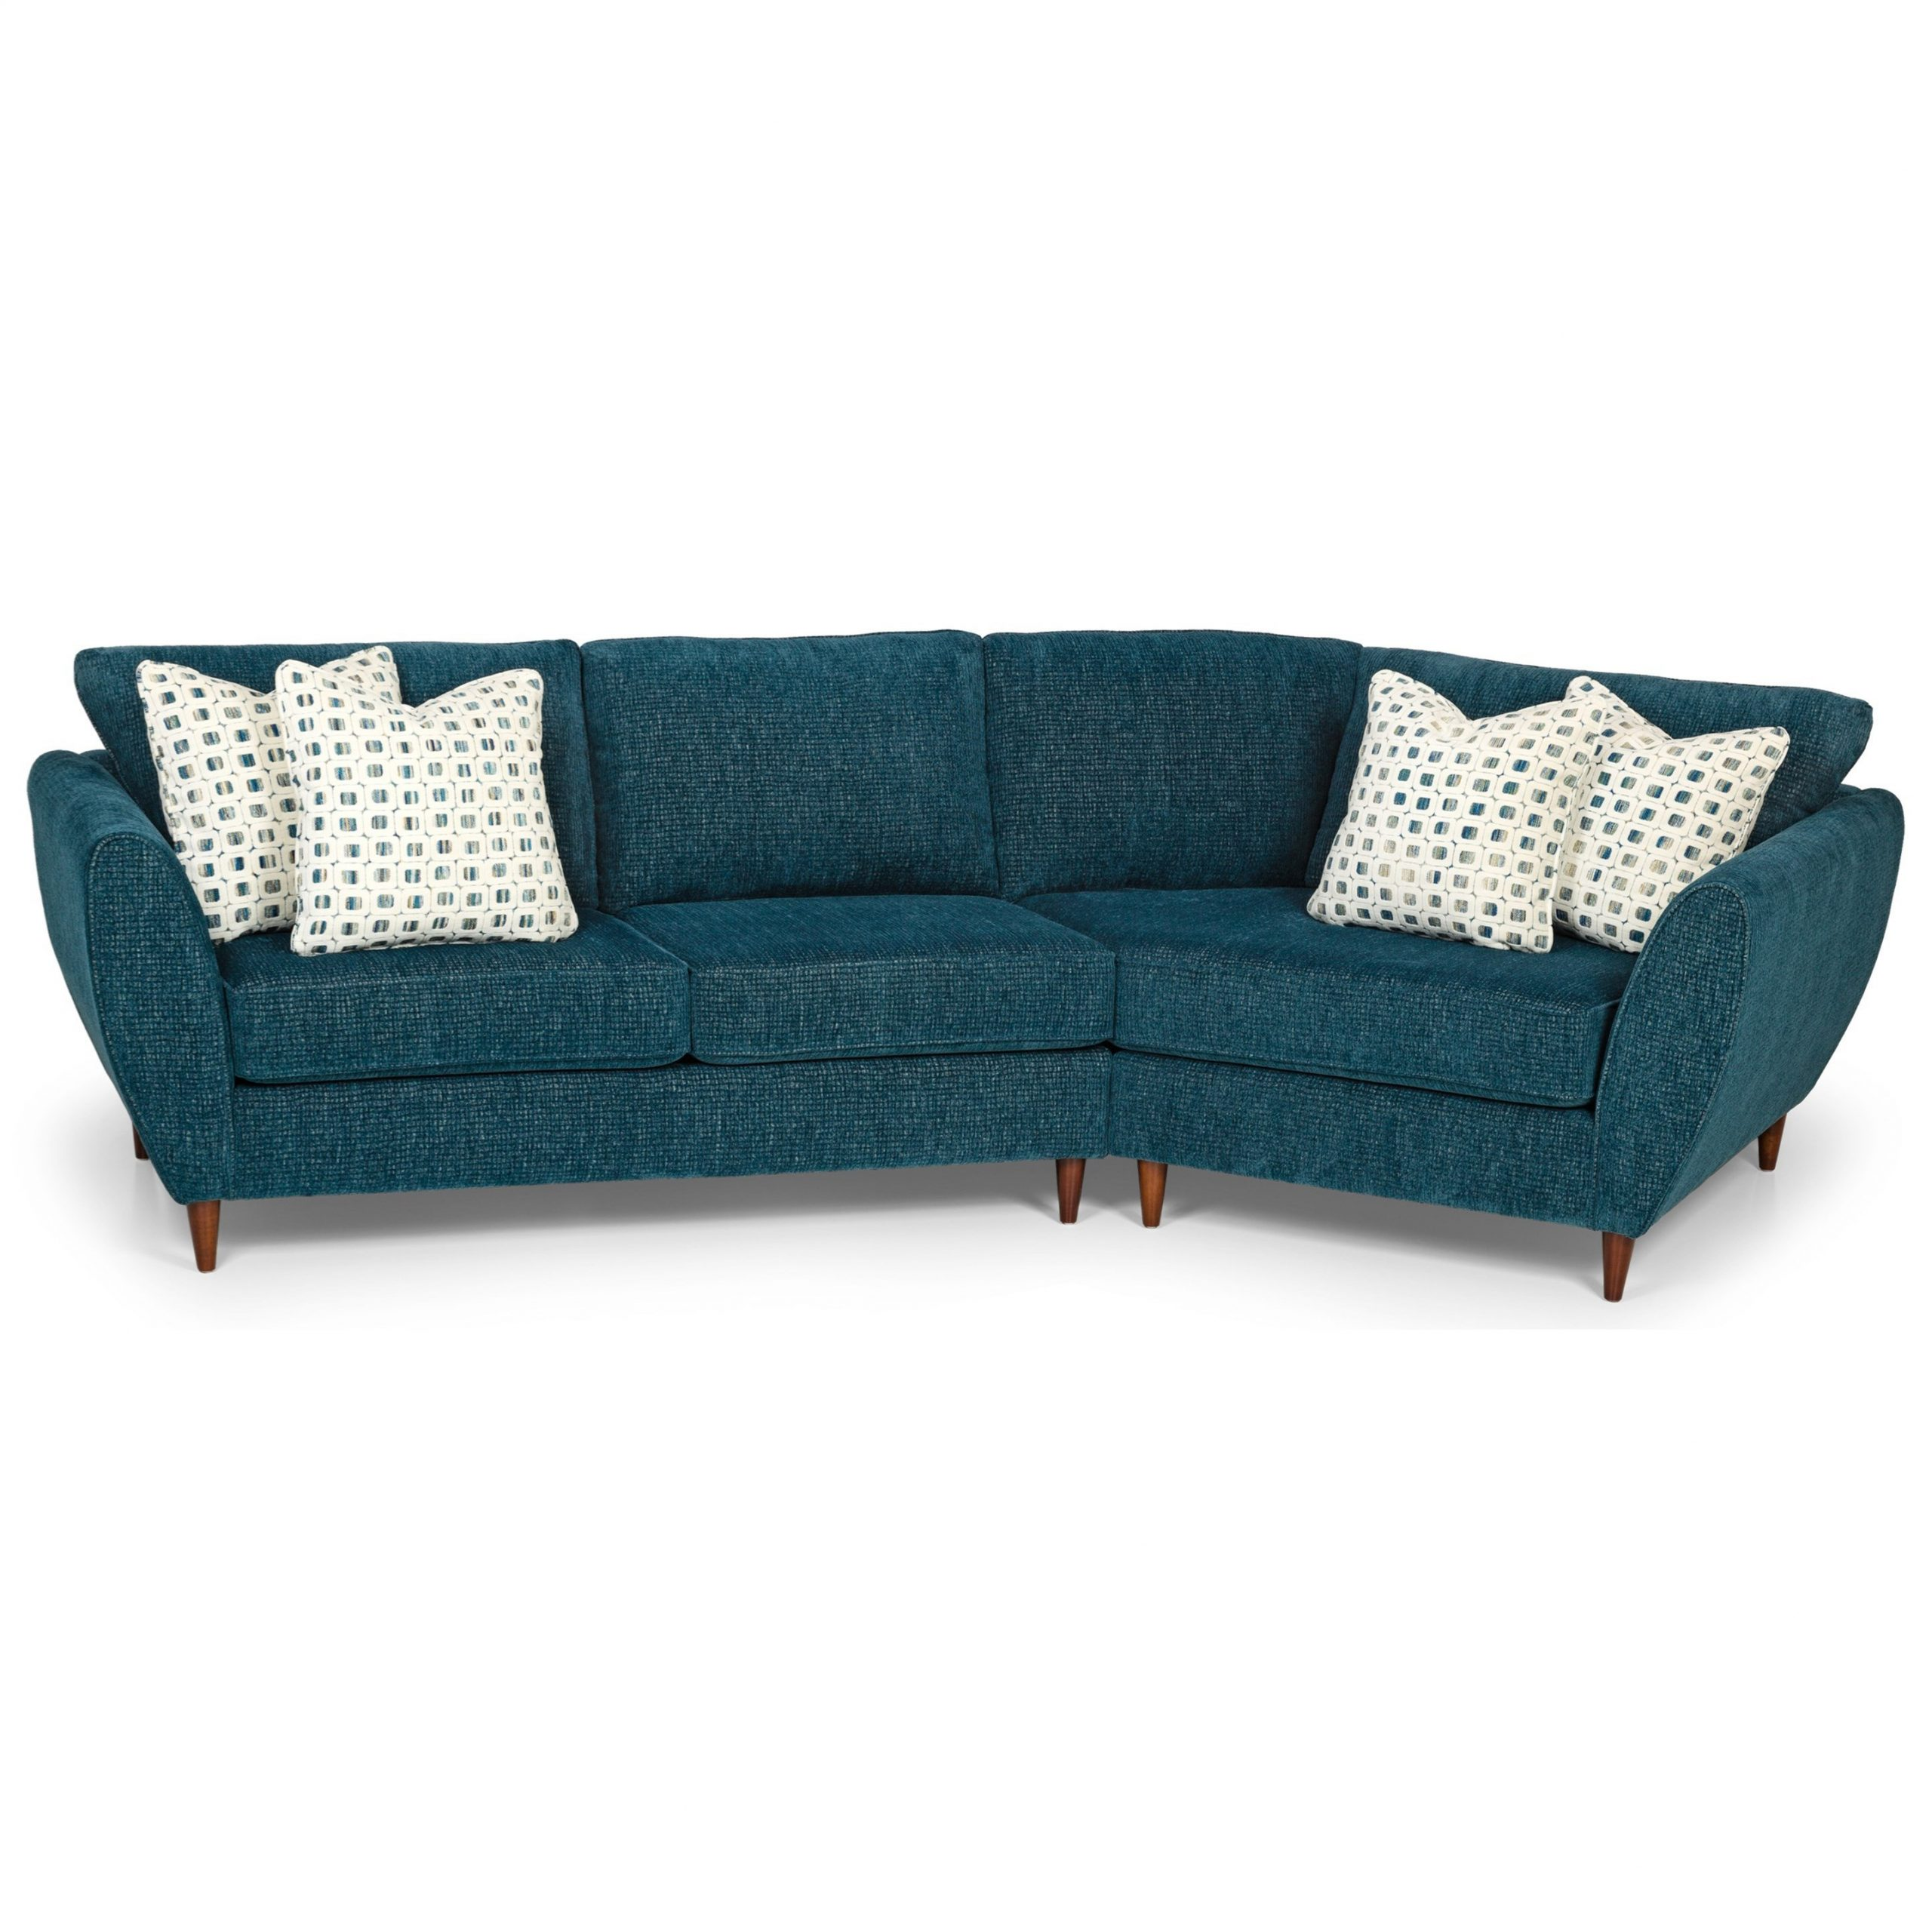 Stanton 473 Mid Century Modern 2 Piece Sectional Sofa With Intended For Well Known Florence Mid Century Modern Left Sectional Sofas (View 2 of 25)